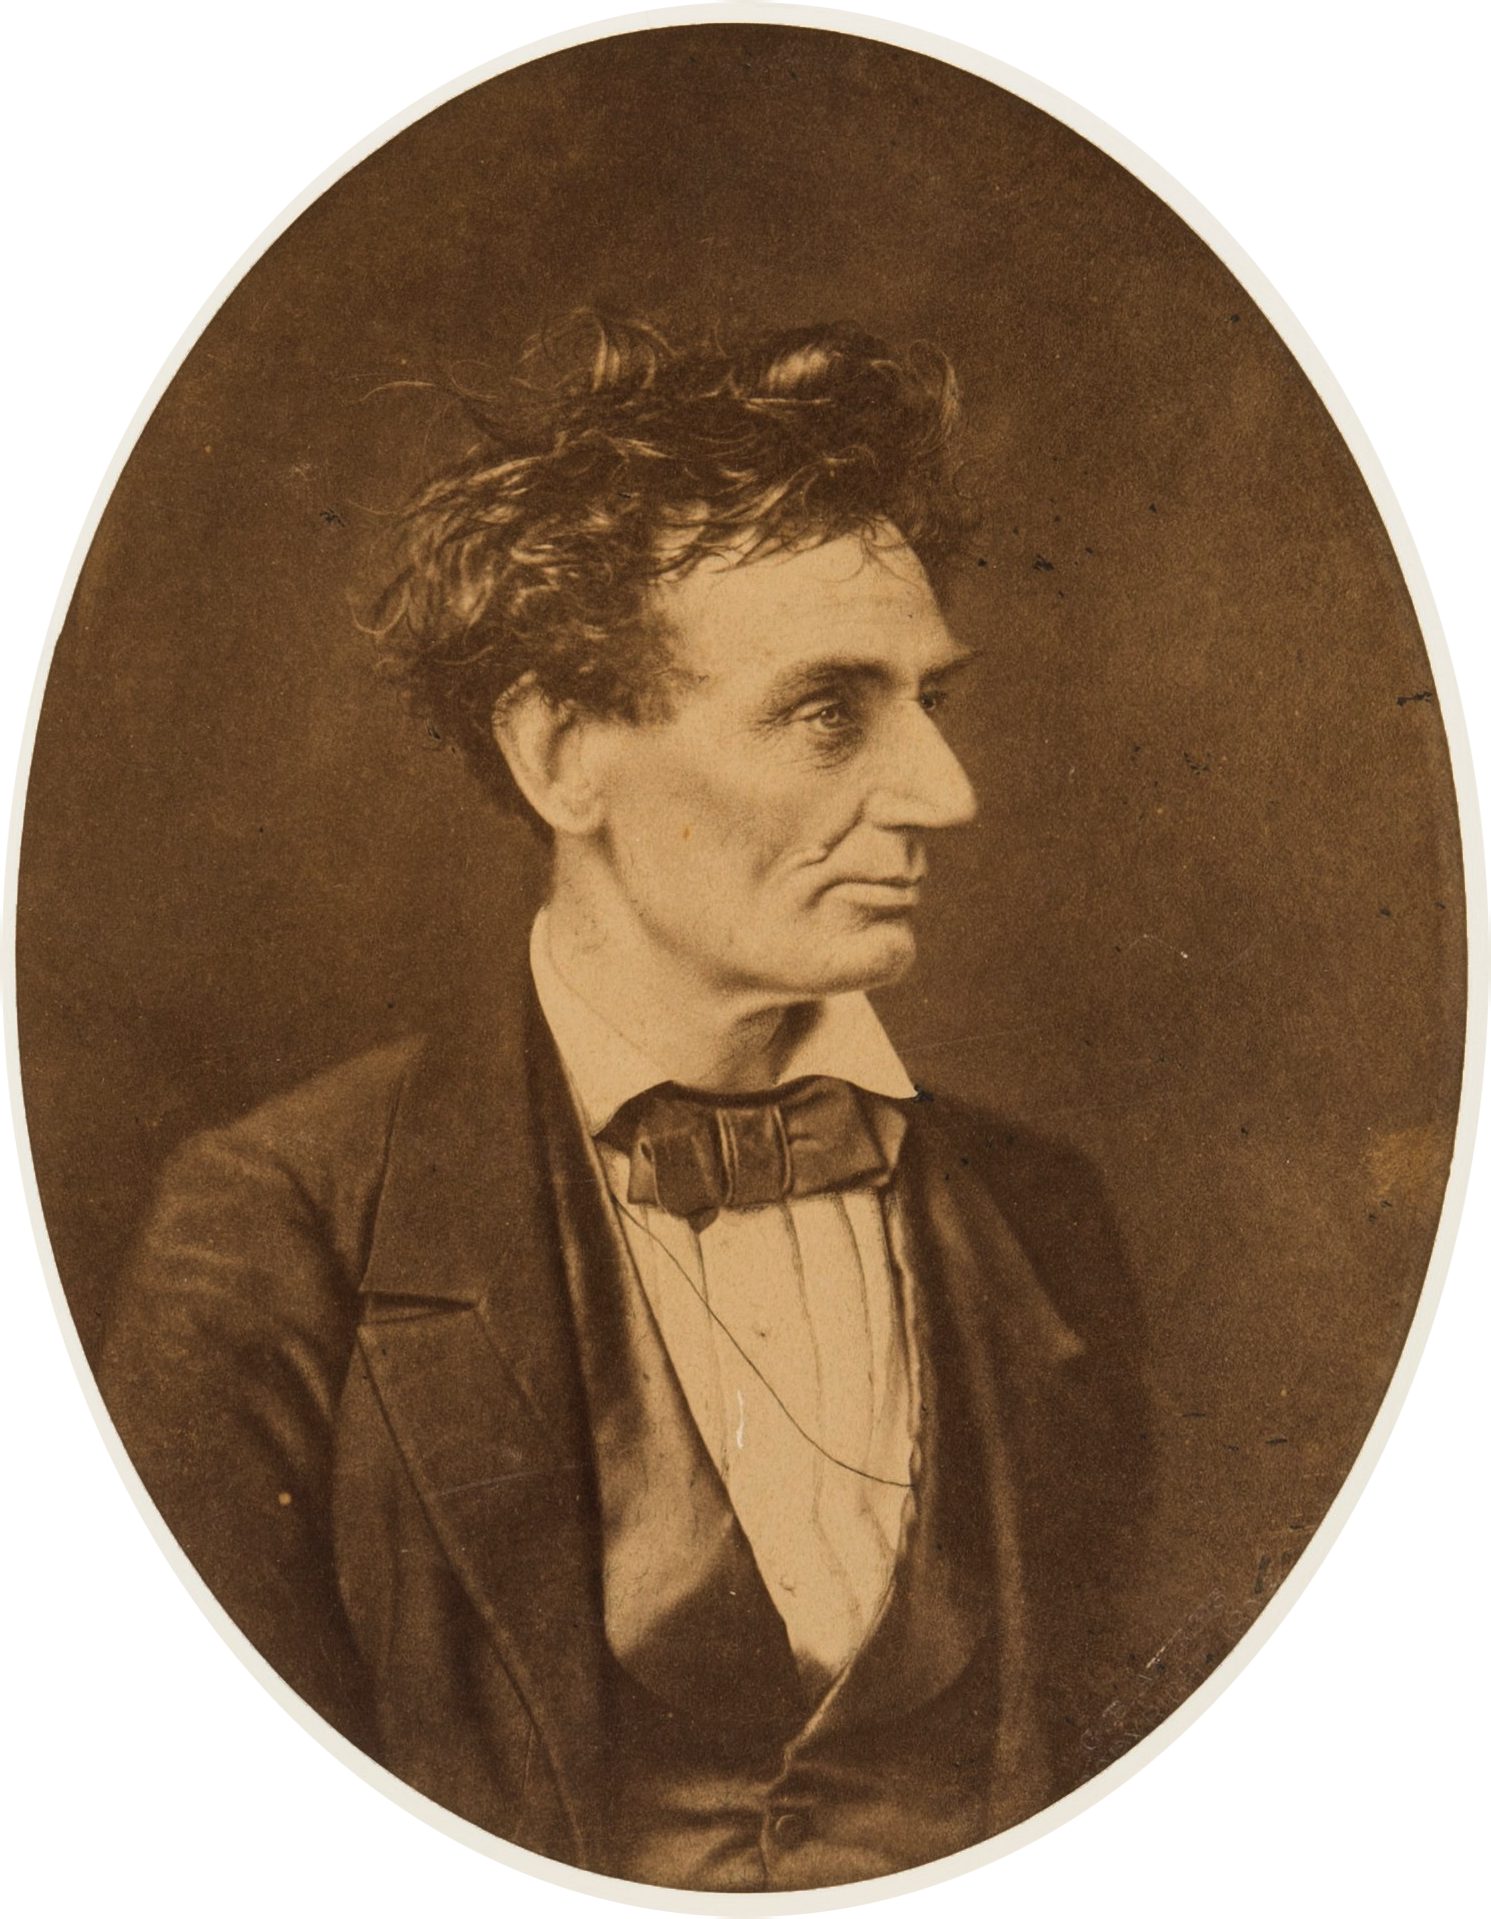 a description of abraham lincoln as a powerful president in the united states Abraham lincoln was elected president on november sixth, eighteen sixty south carolina exploded with excitement at the news to many of the people there, lincoln's victory was a signal that ended .